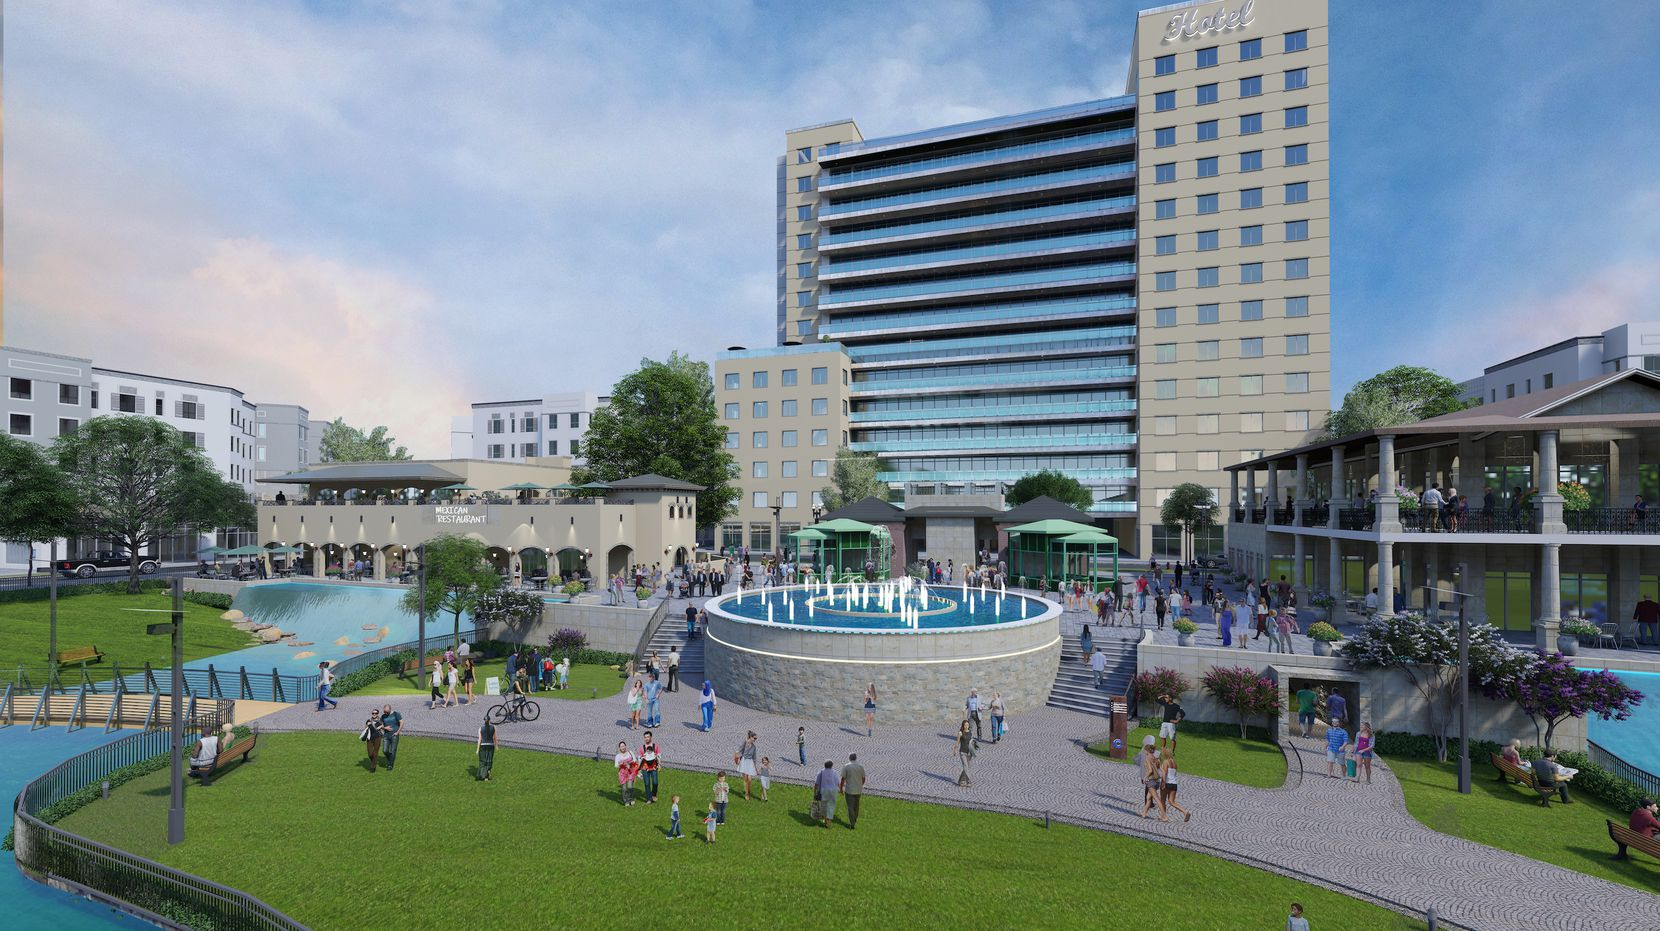 A 200-room hotel, restaurants, apartments and a water feature would be constructed in the first phase of the Collin Creek Mall project.